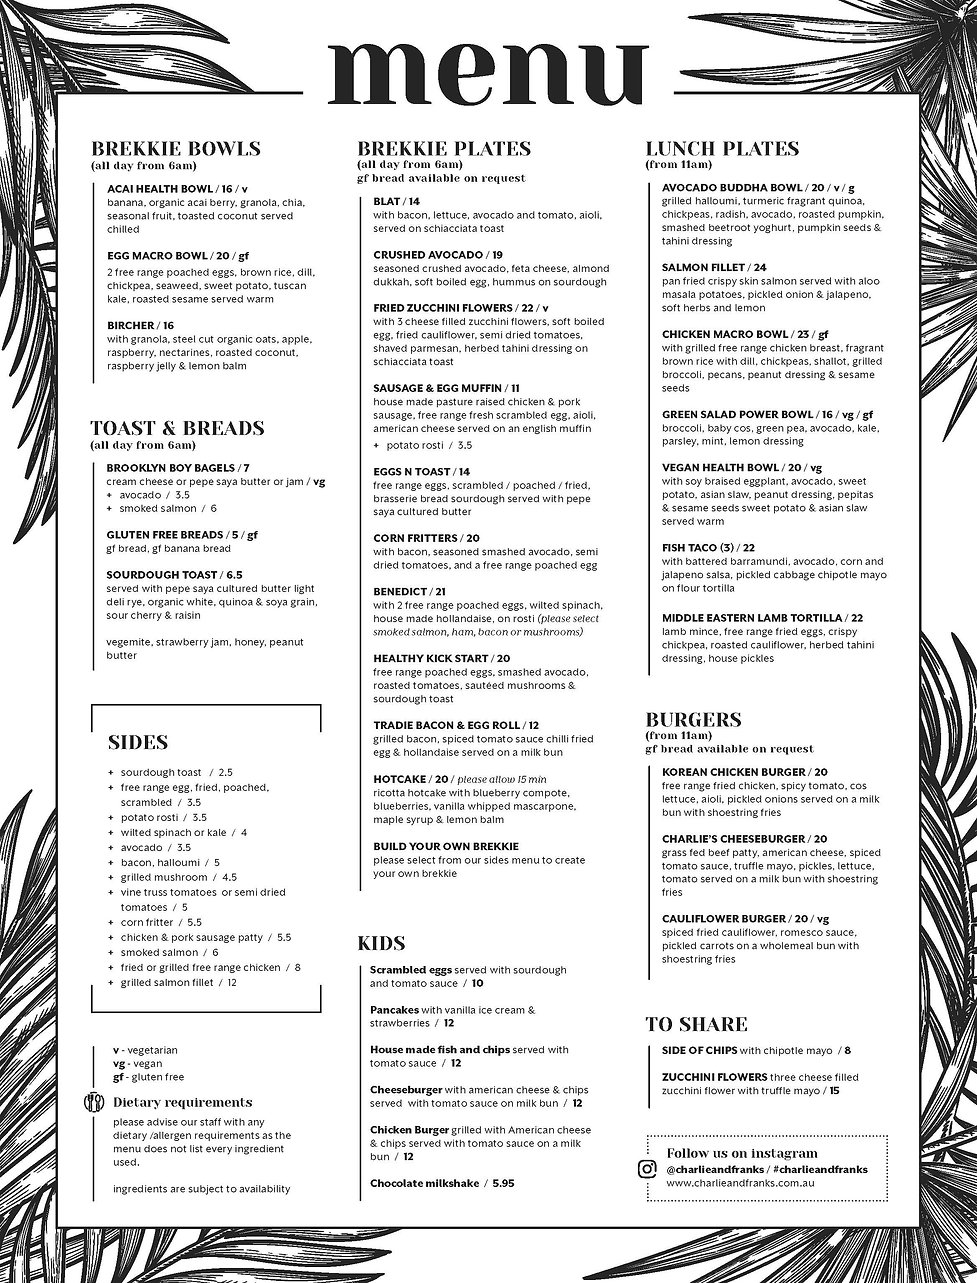 C&F005 Menu Final-V3 297x390 (nocrops)_P